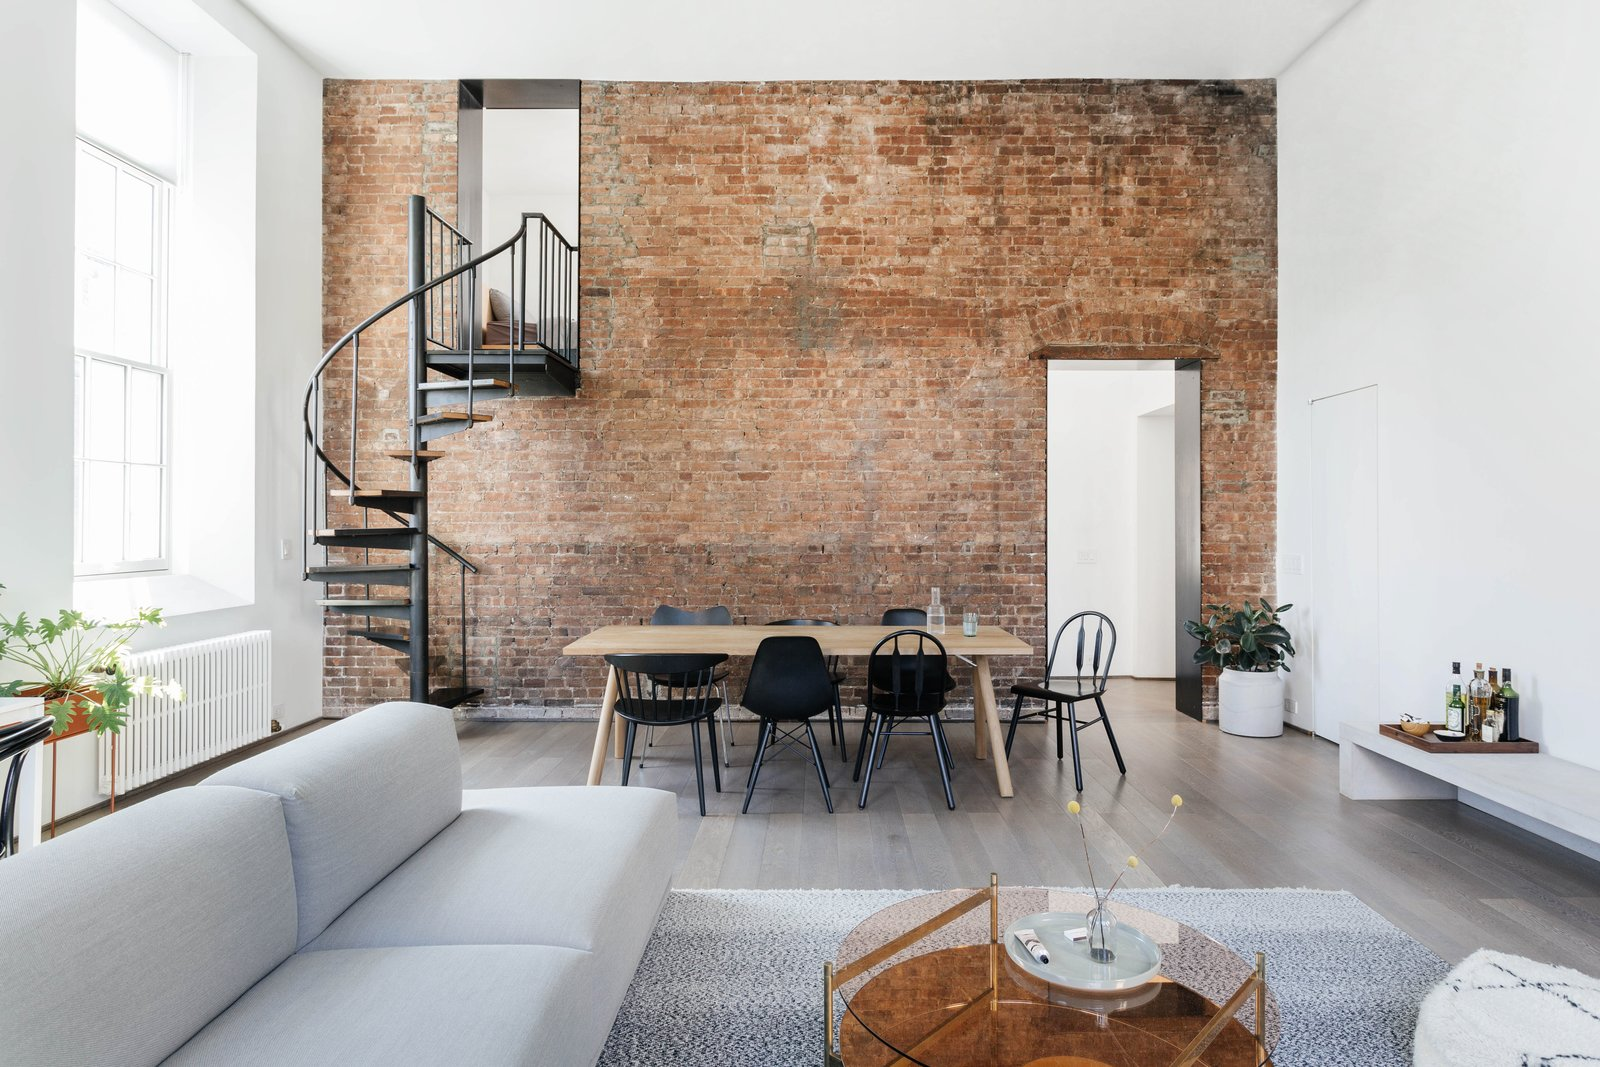 Photo 2 of 14 in A Small Manhattan Home Gains Space With Two Cozy Lofts - Dwell